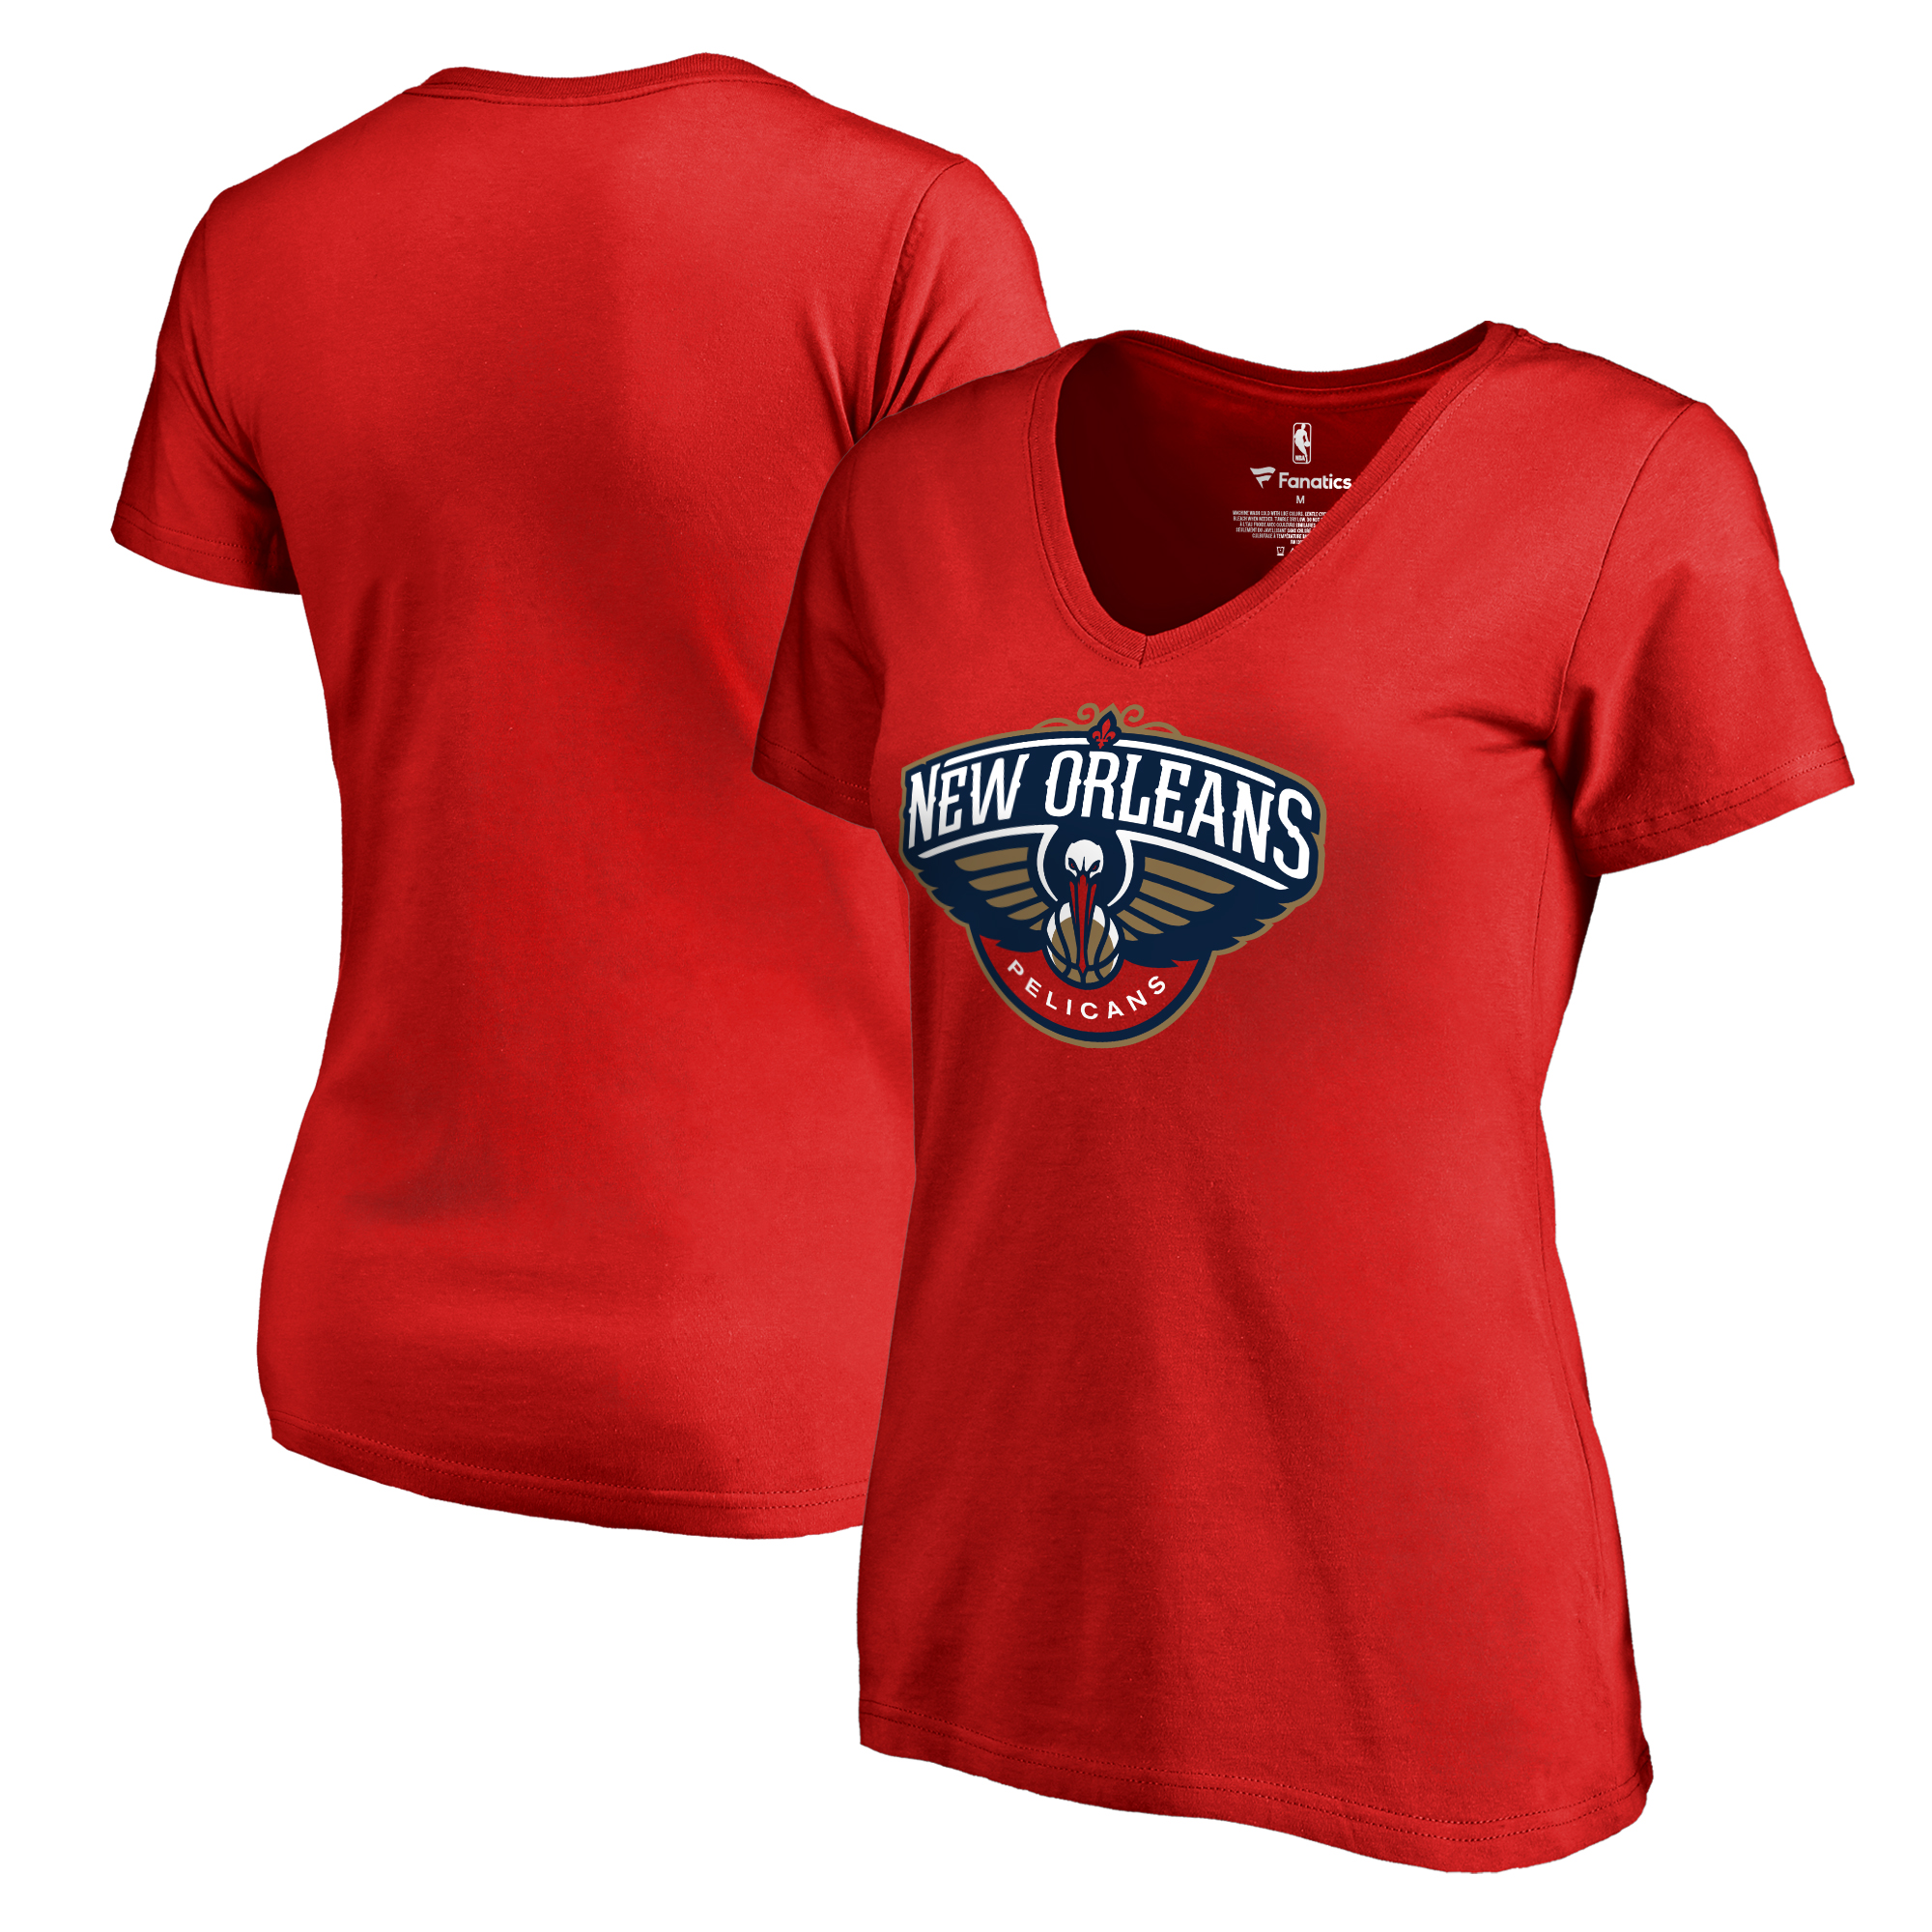 New Orleans Pelicans Fanatics Branded Women's Primary Logo V-Neck T-Shirt - Red